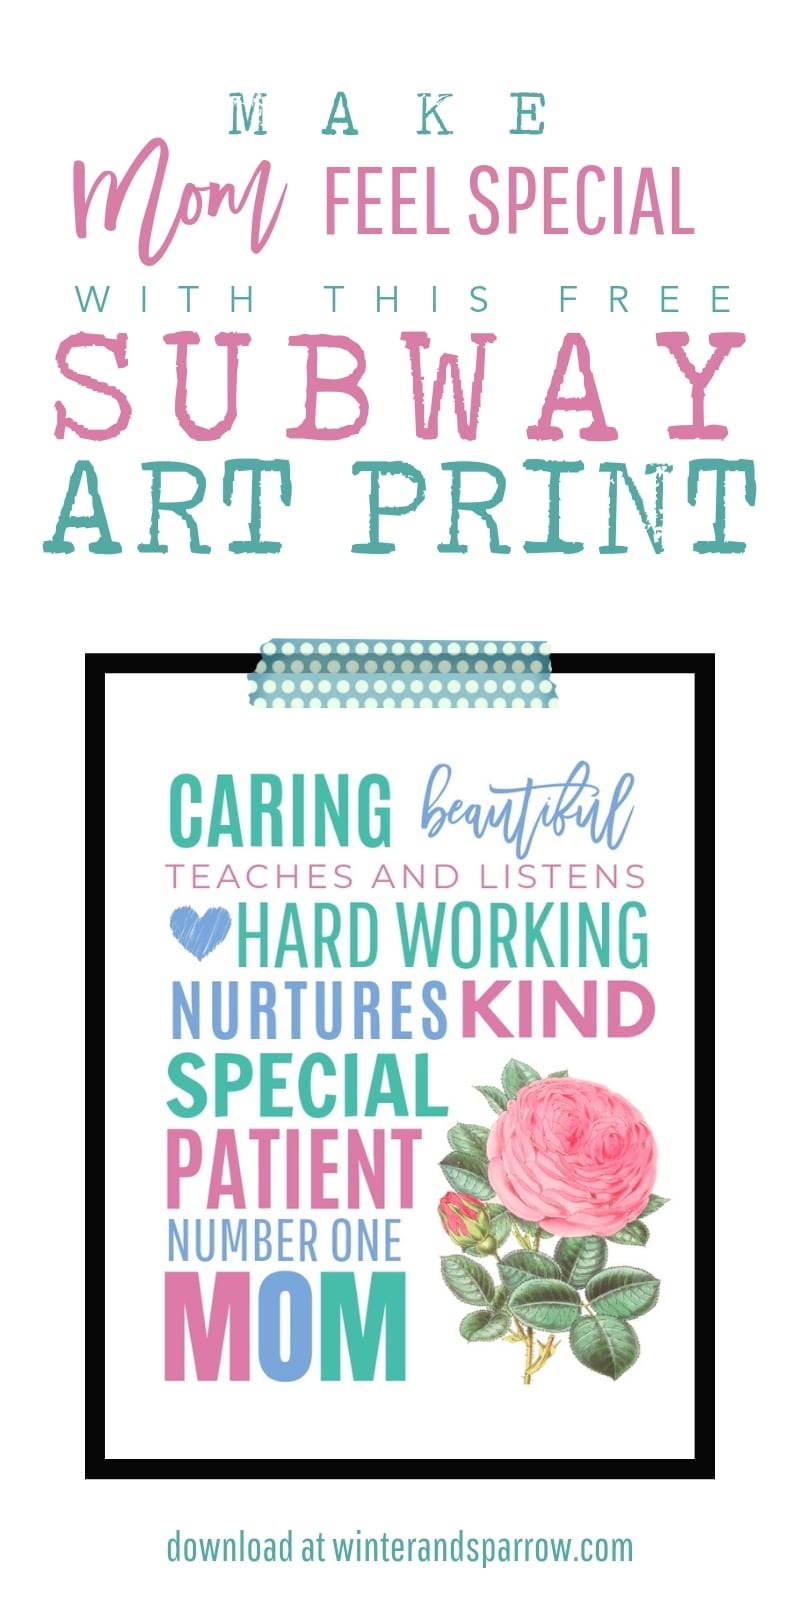 Free Mothers Day Printable: Give Mom A Framed Subway Art Print | winterandsparrow.com #subwayartprint #mothersdayprintable #mothersdaysubwayart #freemothersdayprintable